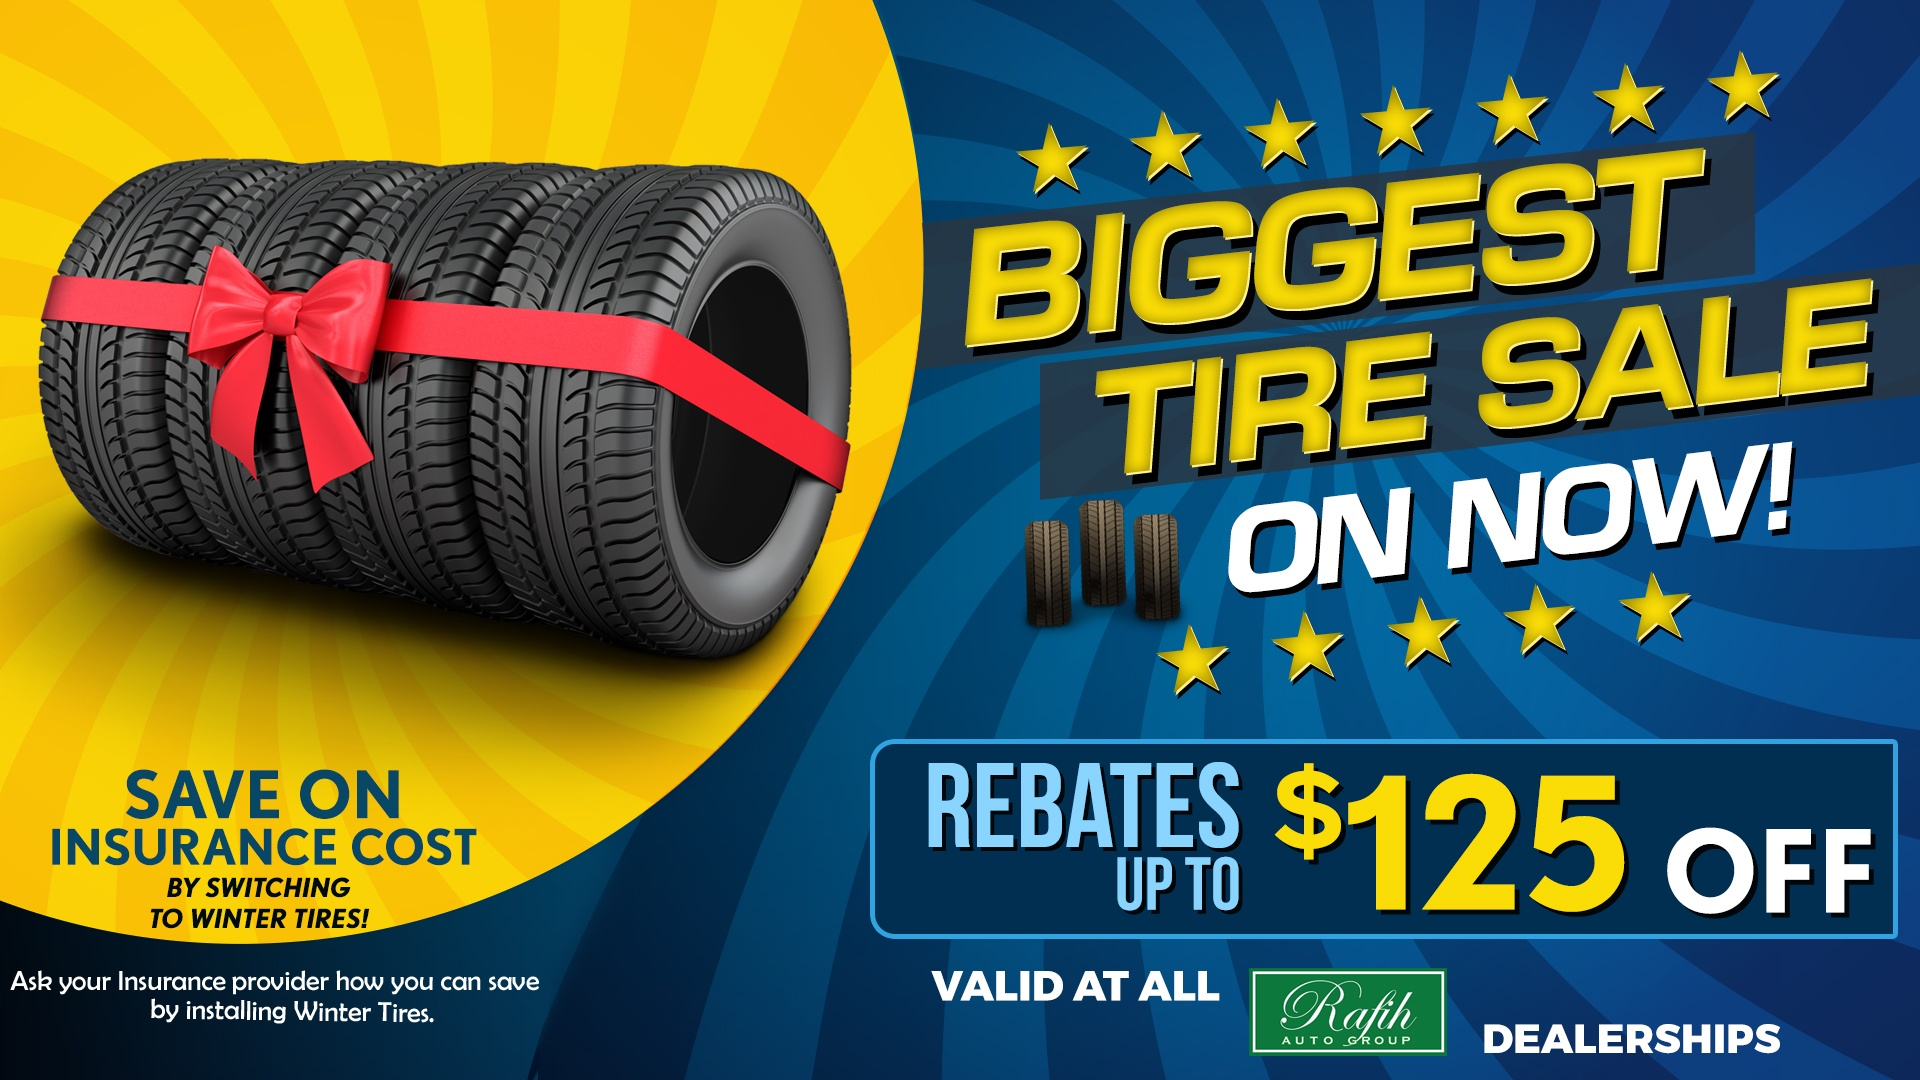 Biggest Tire Sale on Now!